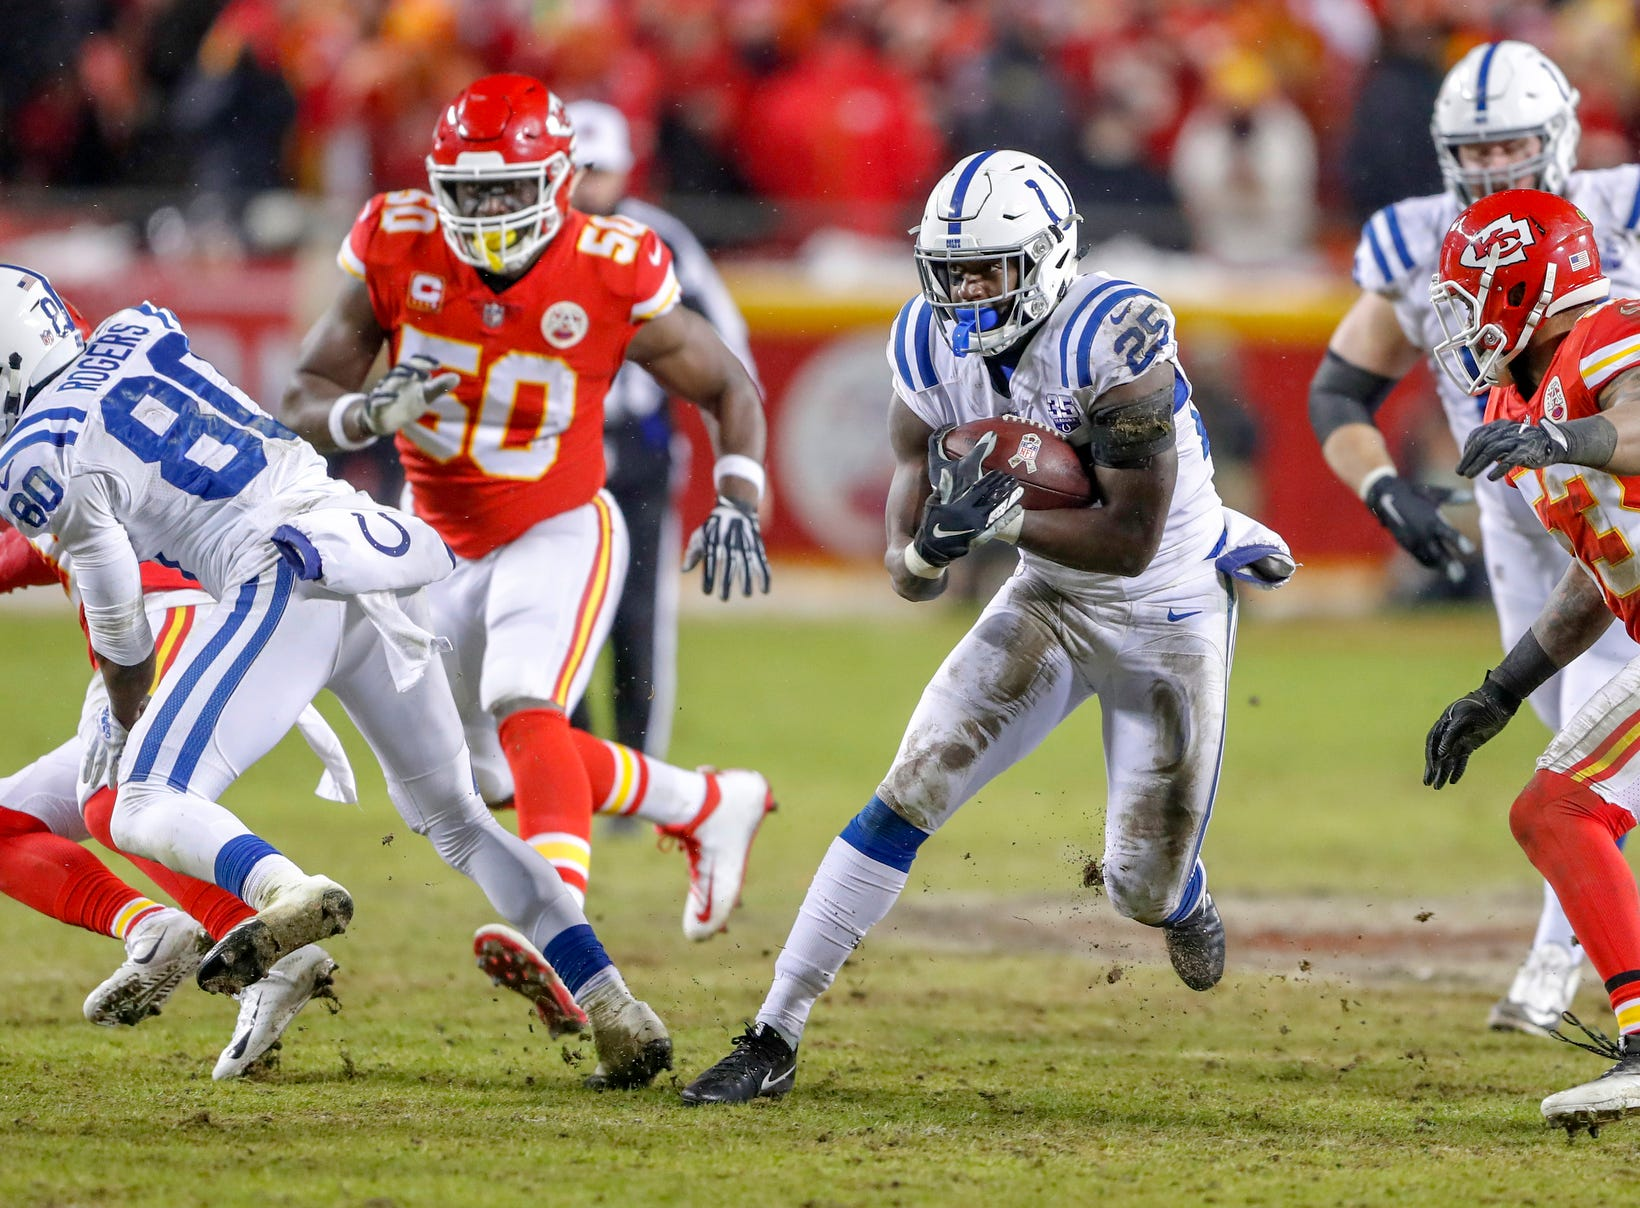 Indianapolis Colts running back Marlon Mack (25) rushes against the Kansas City Chiefs in the third quarter at Arrowhead Stadium in Kansas City, Mo., on Saturday, Jan. 12, 2019.